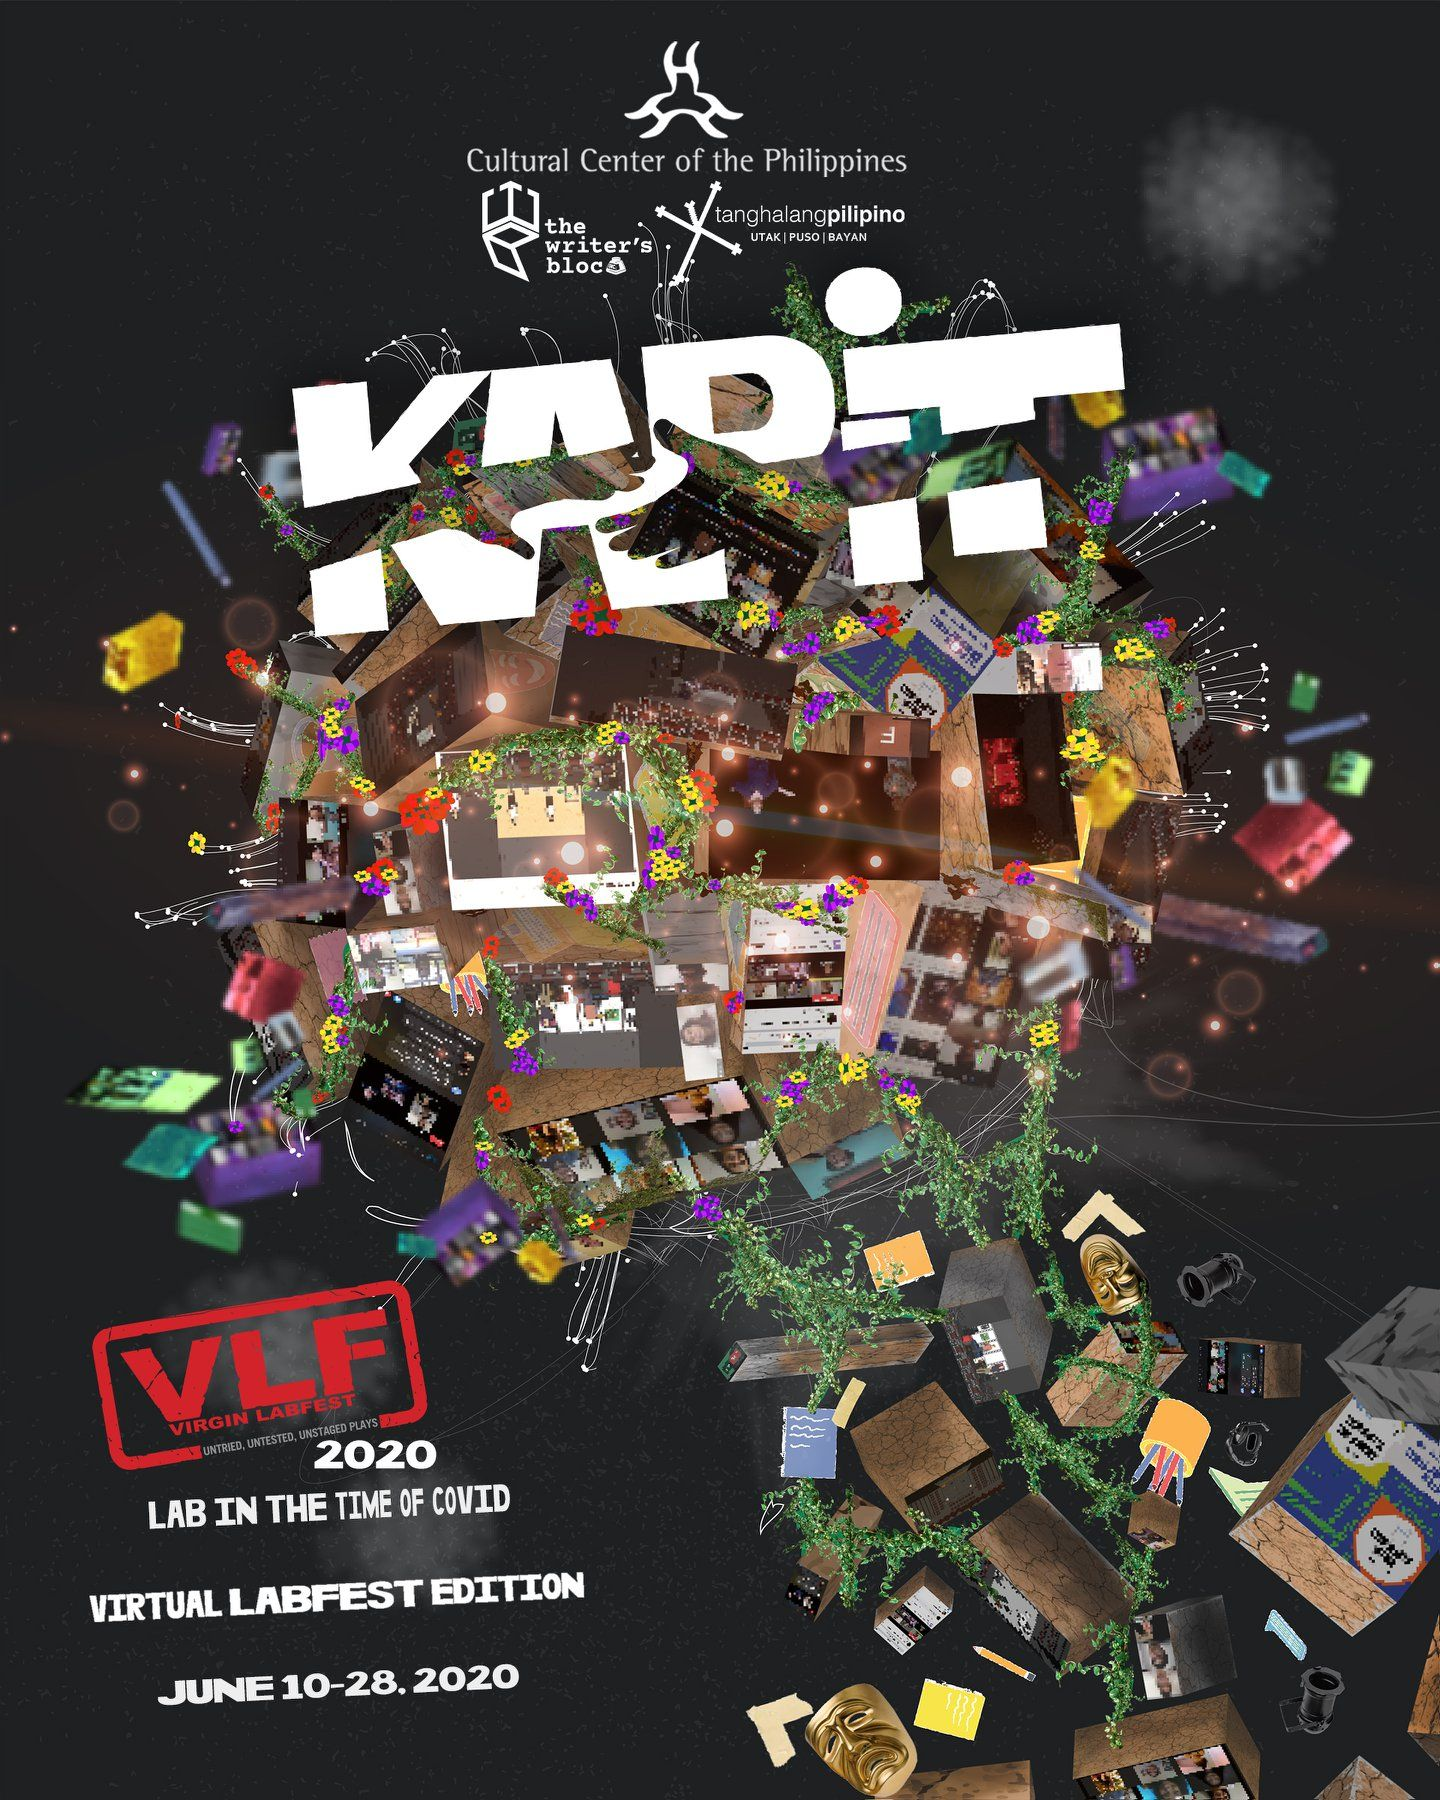 Virgin Labfest 2020: Happening Virtually This June Starting Wednesday